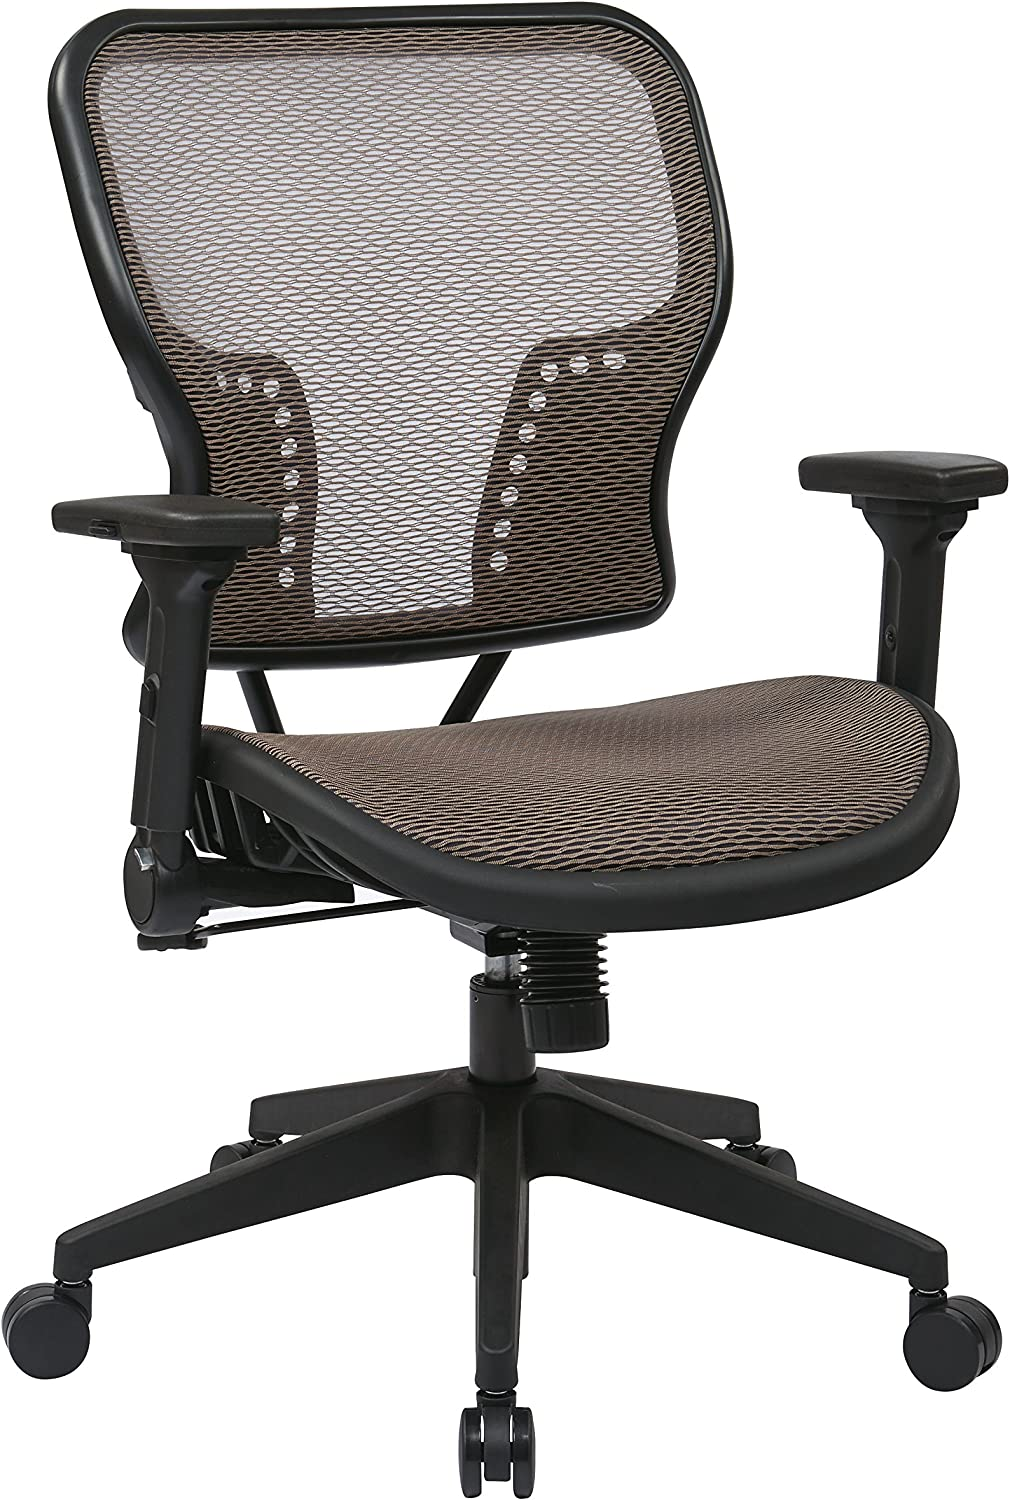 SPACE Seating AirGrid Seat and Back, 2-to-1 Synchro Tilt Control, 4-Way Adjustable Padded Flip Arms, and Nylon Base Managers Chair, Latte